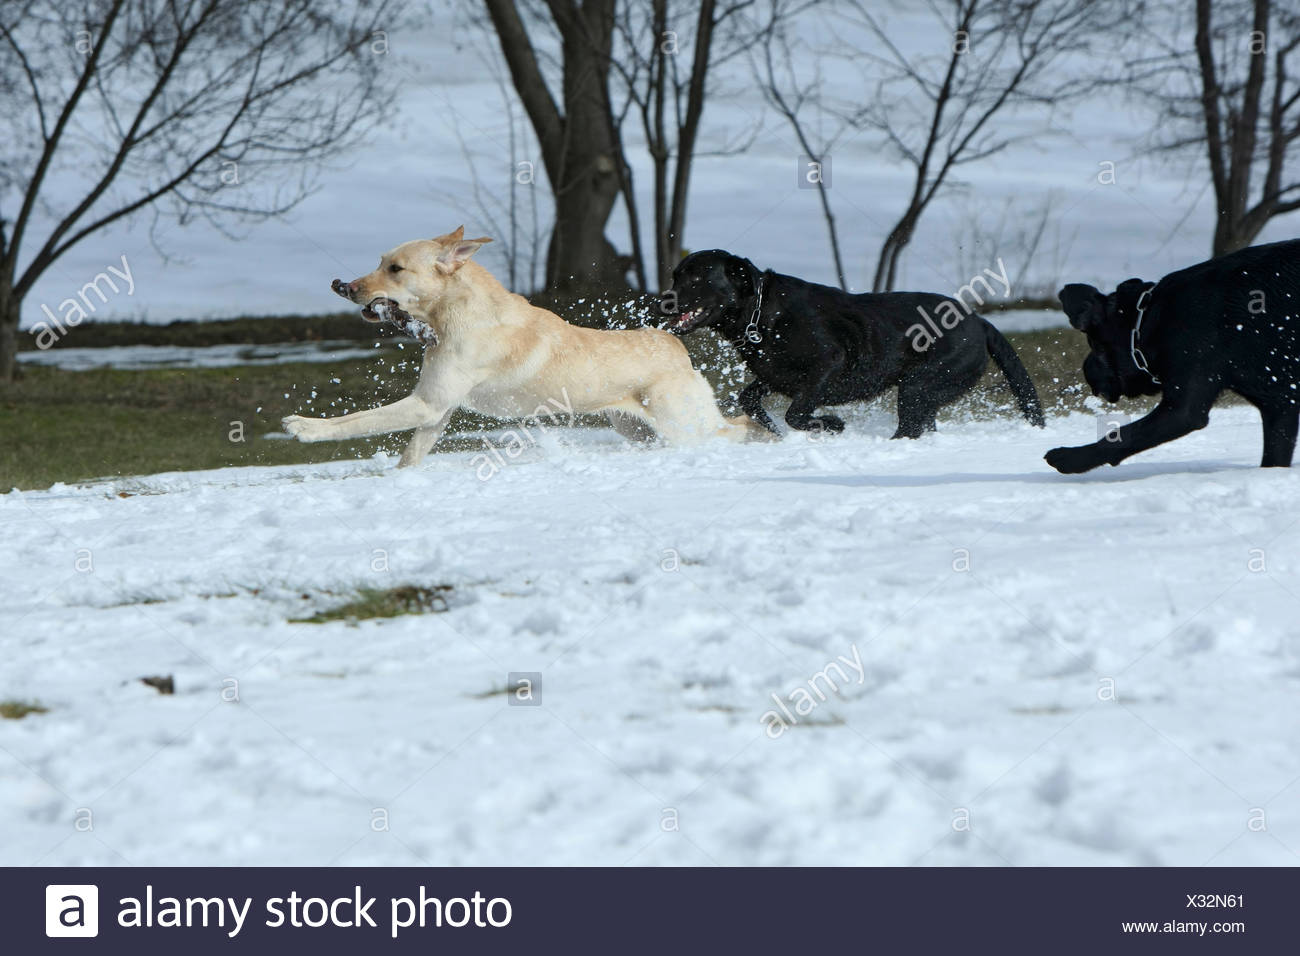 Playing dogs, Canis lupus familiaris, Feldberg, Feldberger Seenlandschaft, Mecklenburg-Vorpommern, Germany - Stock Image